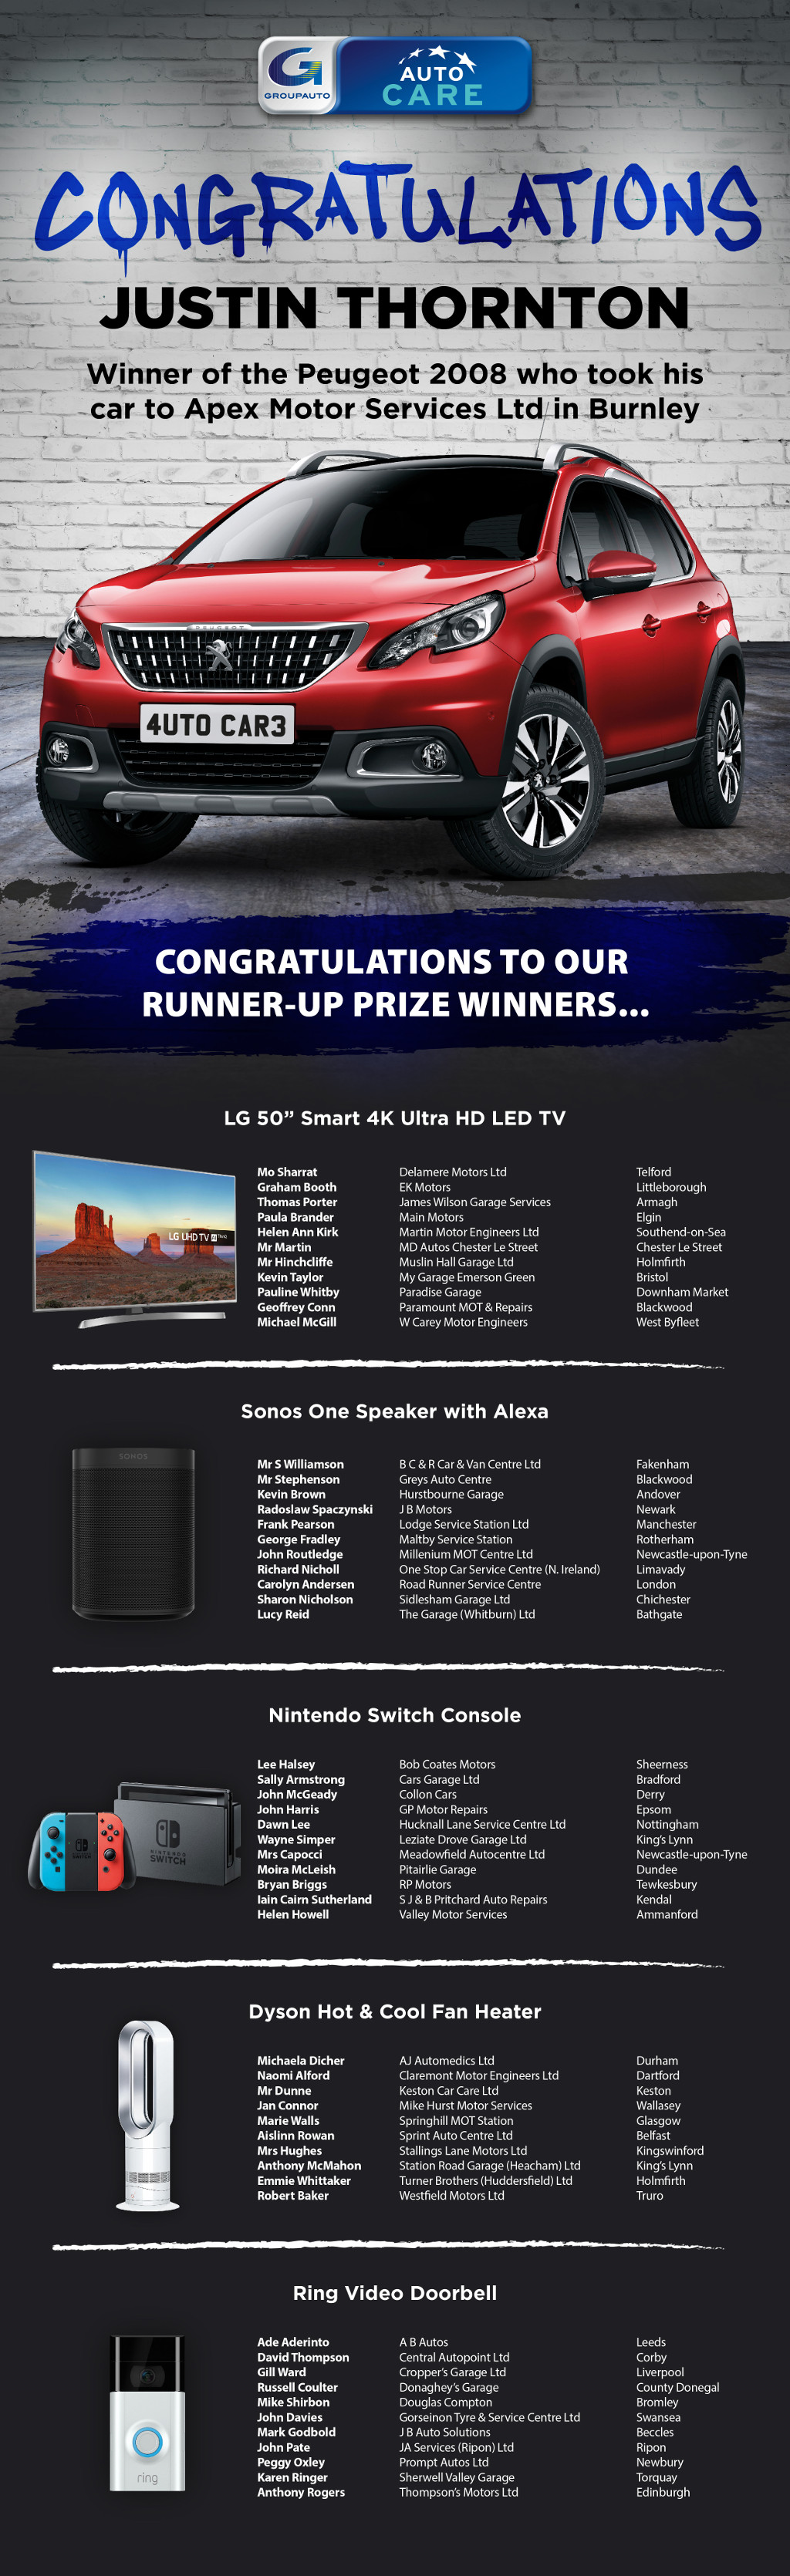 AutoCare Summer Giveaway 2019 Prize Winners